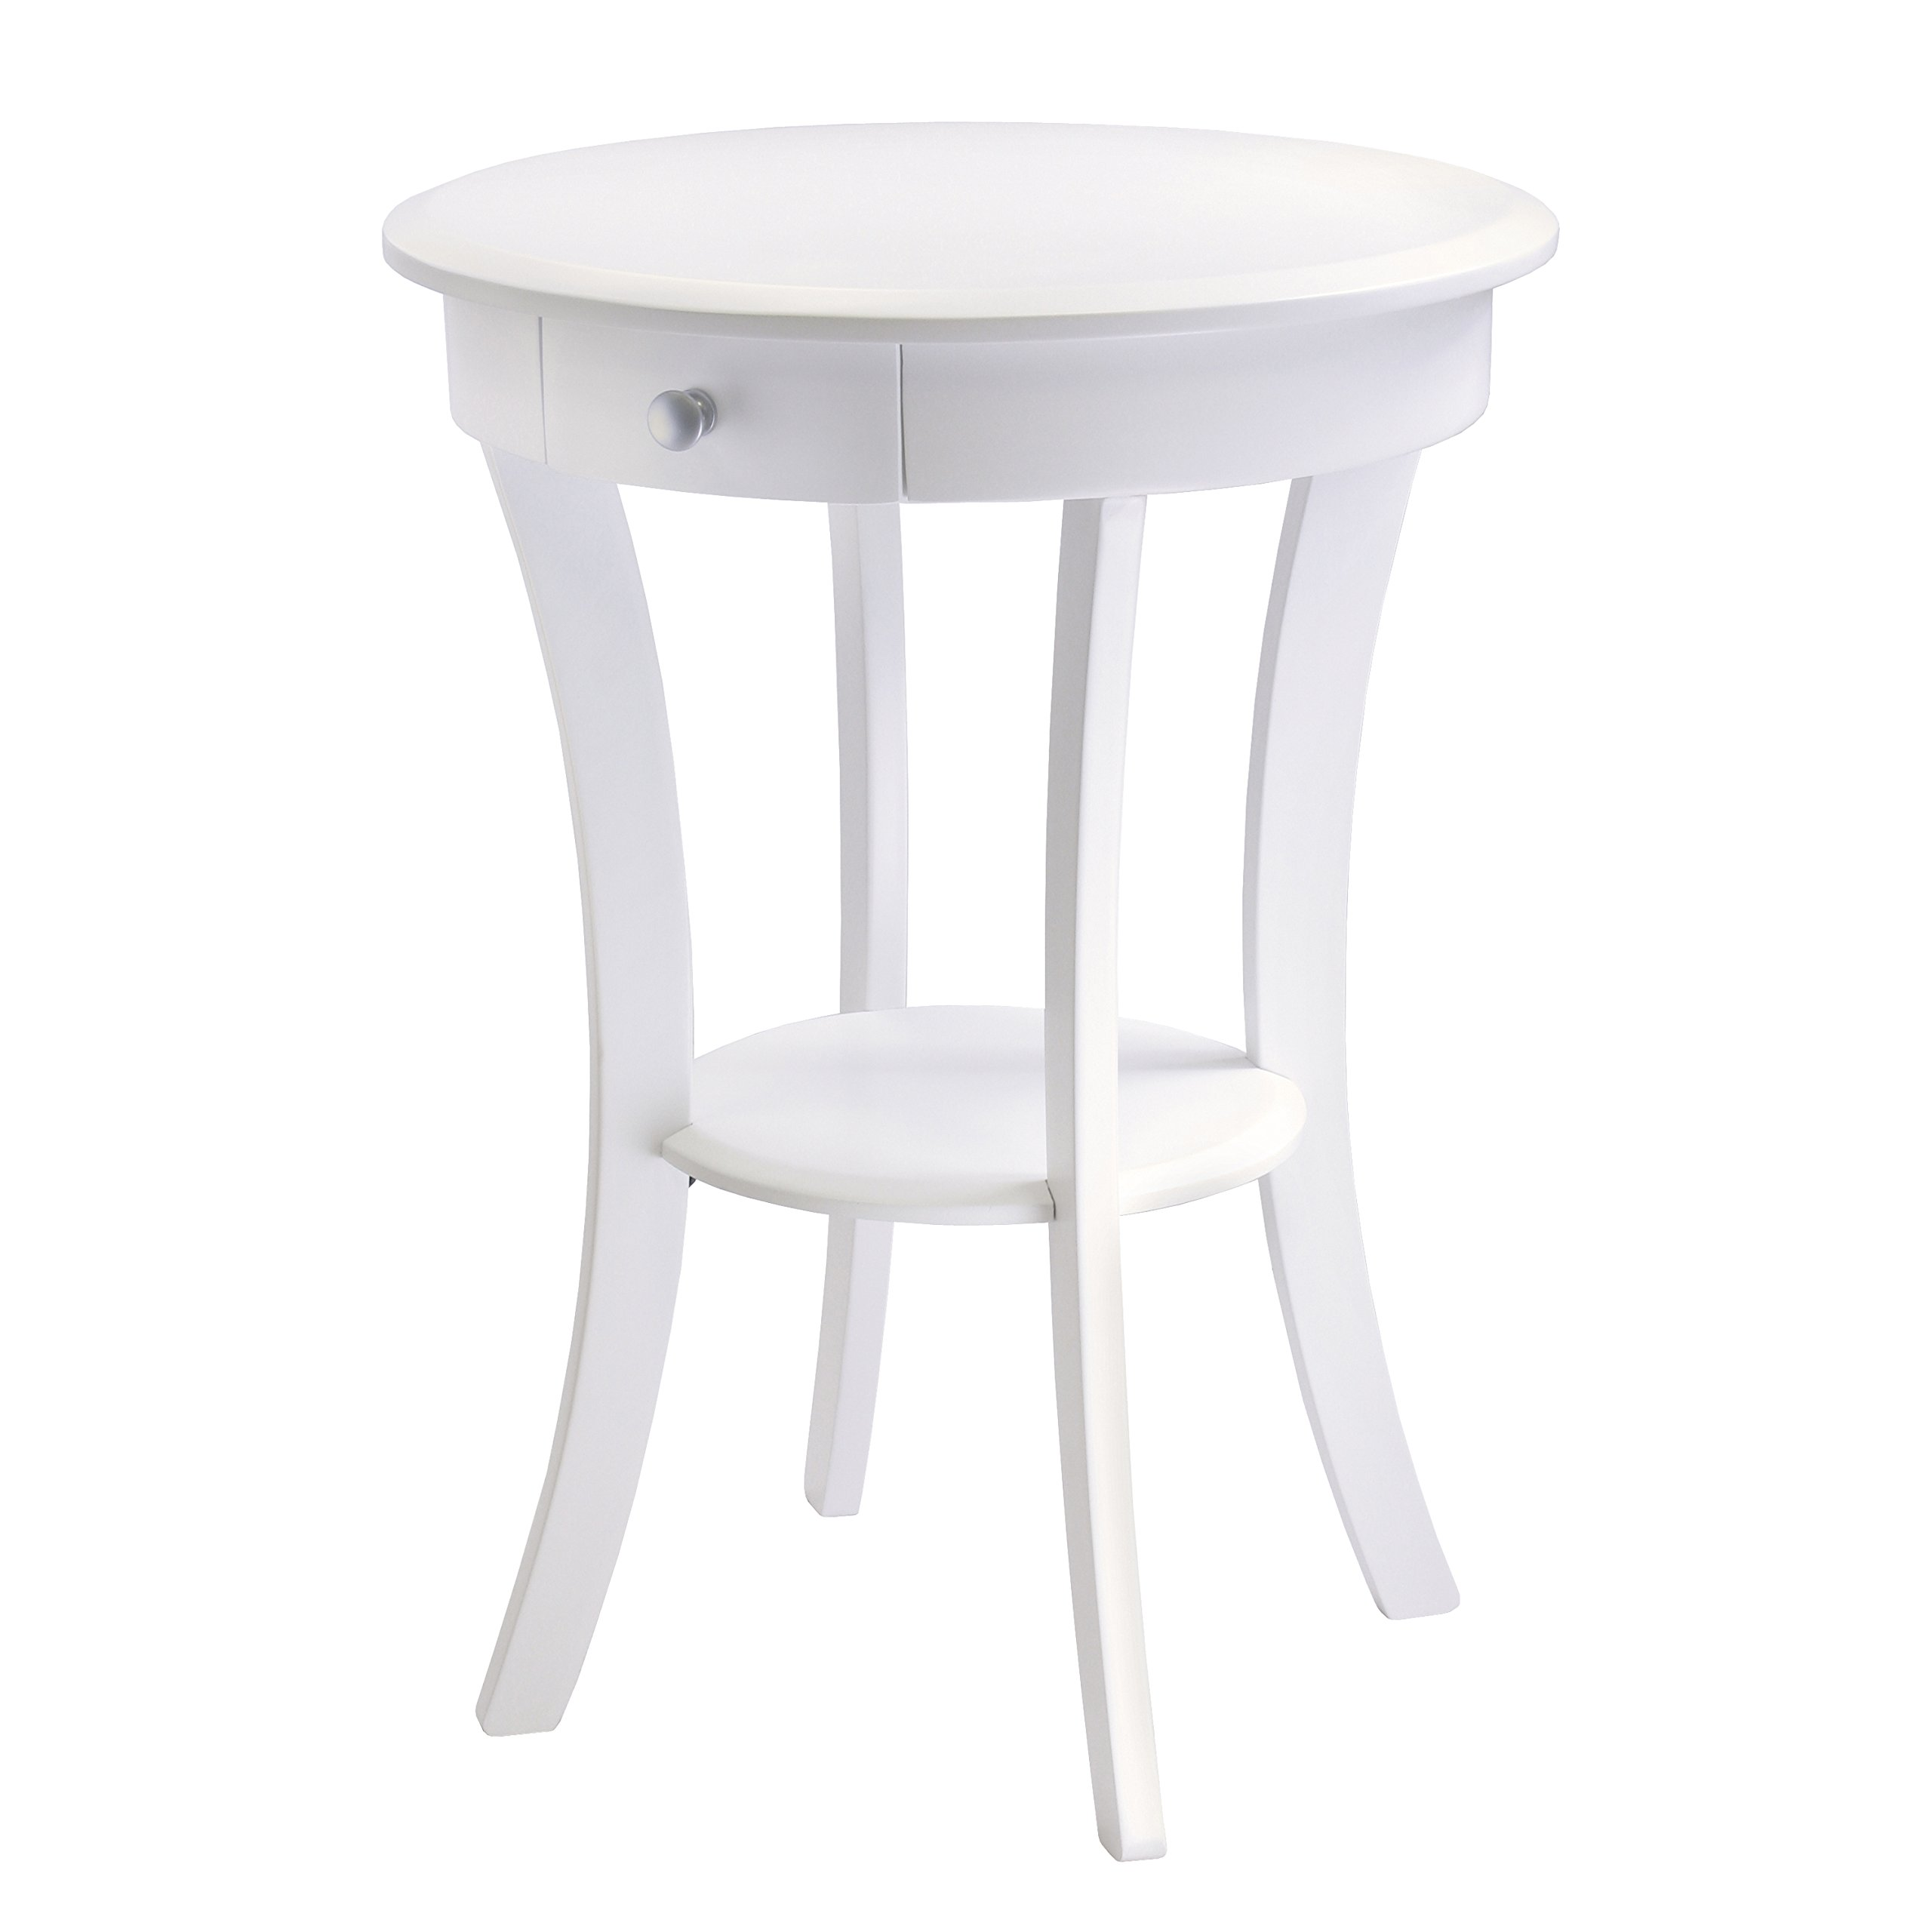 silver accent table probably fantastic amazing white end winsome wood sasha with drawer curved legs top finish bedroom stools argos modern dining furniture half round console